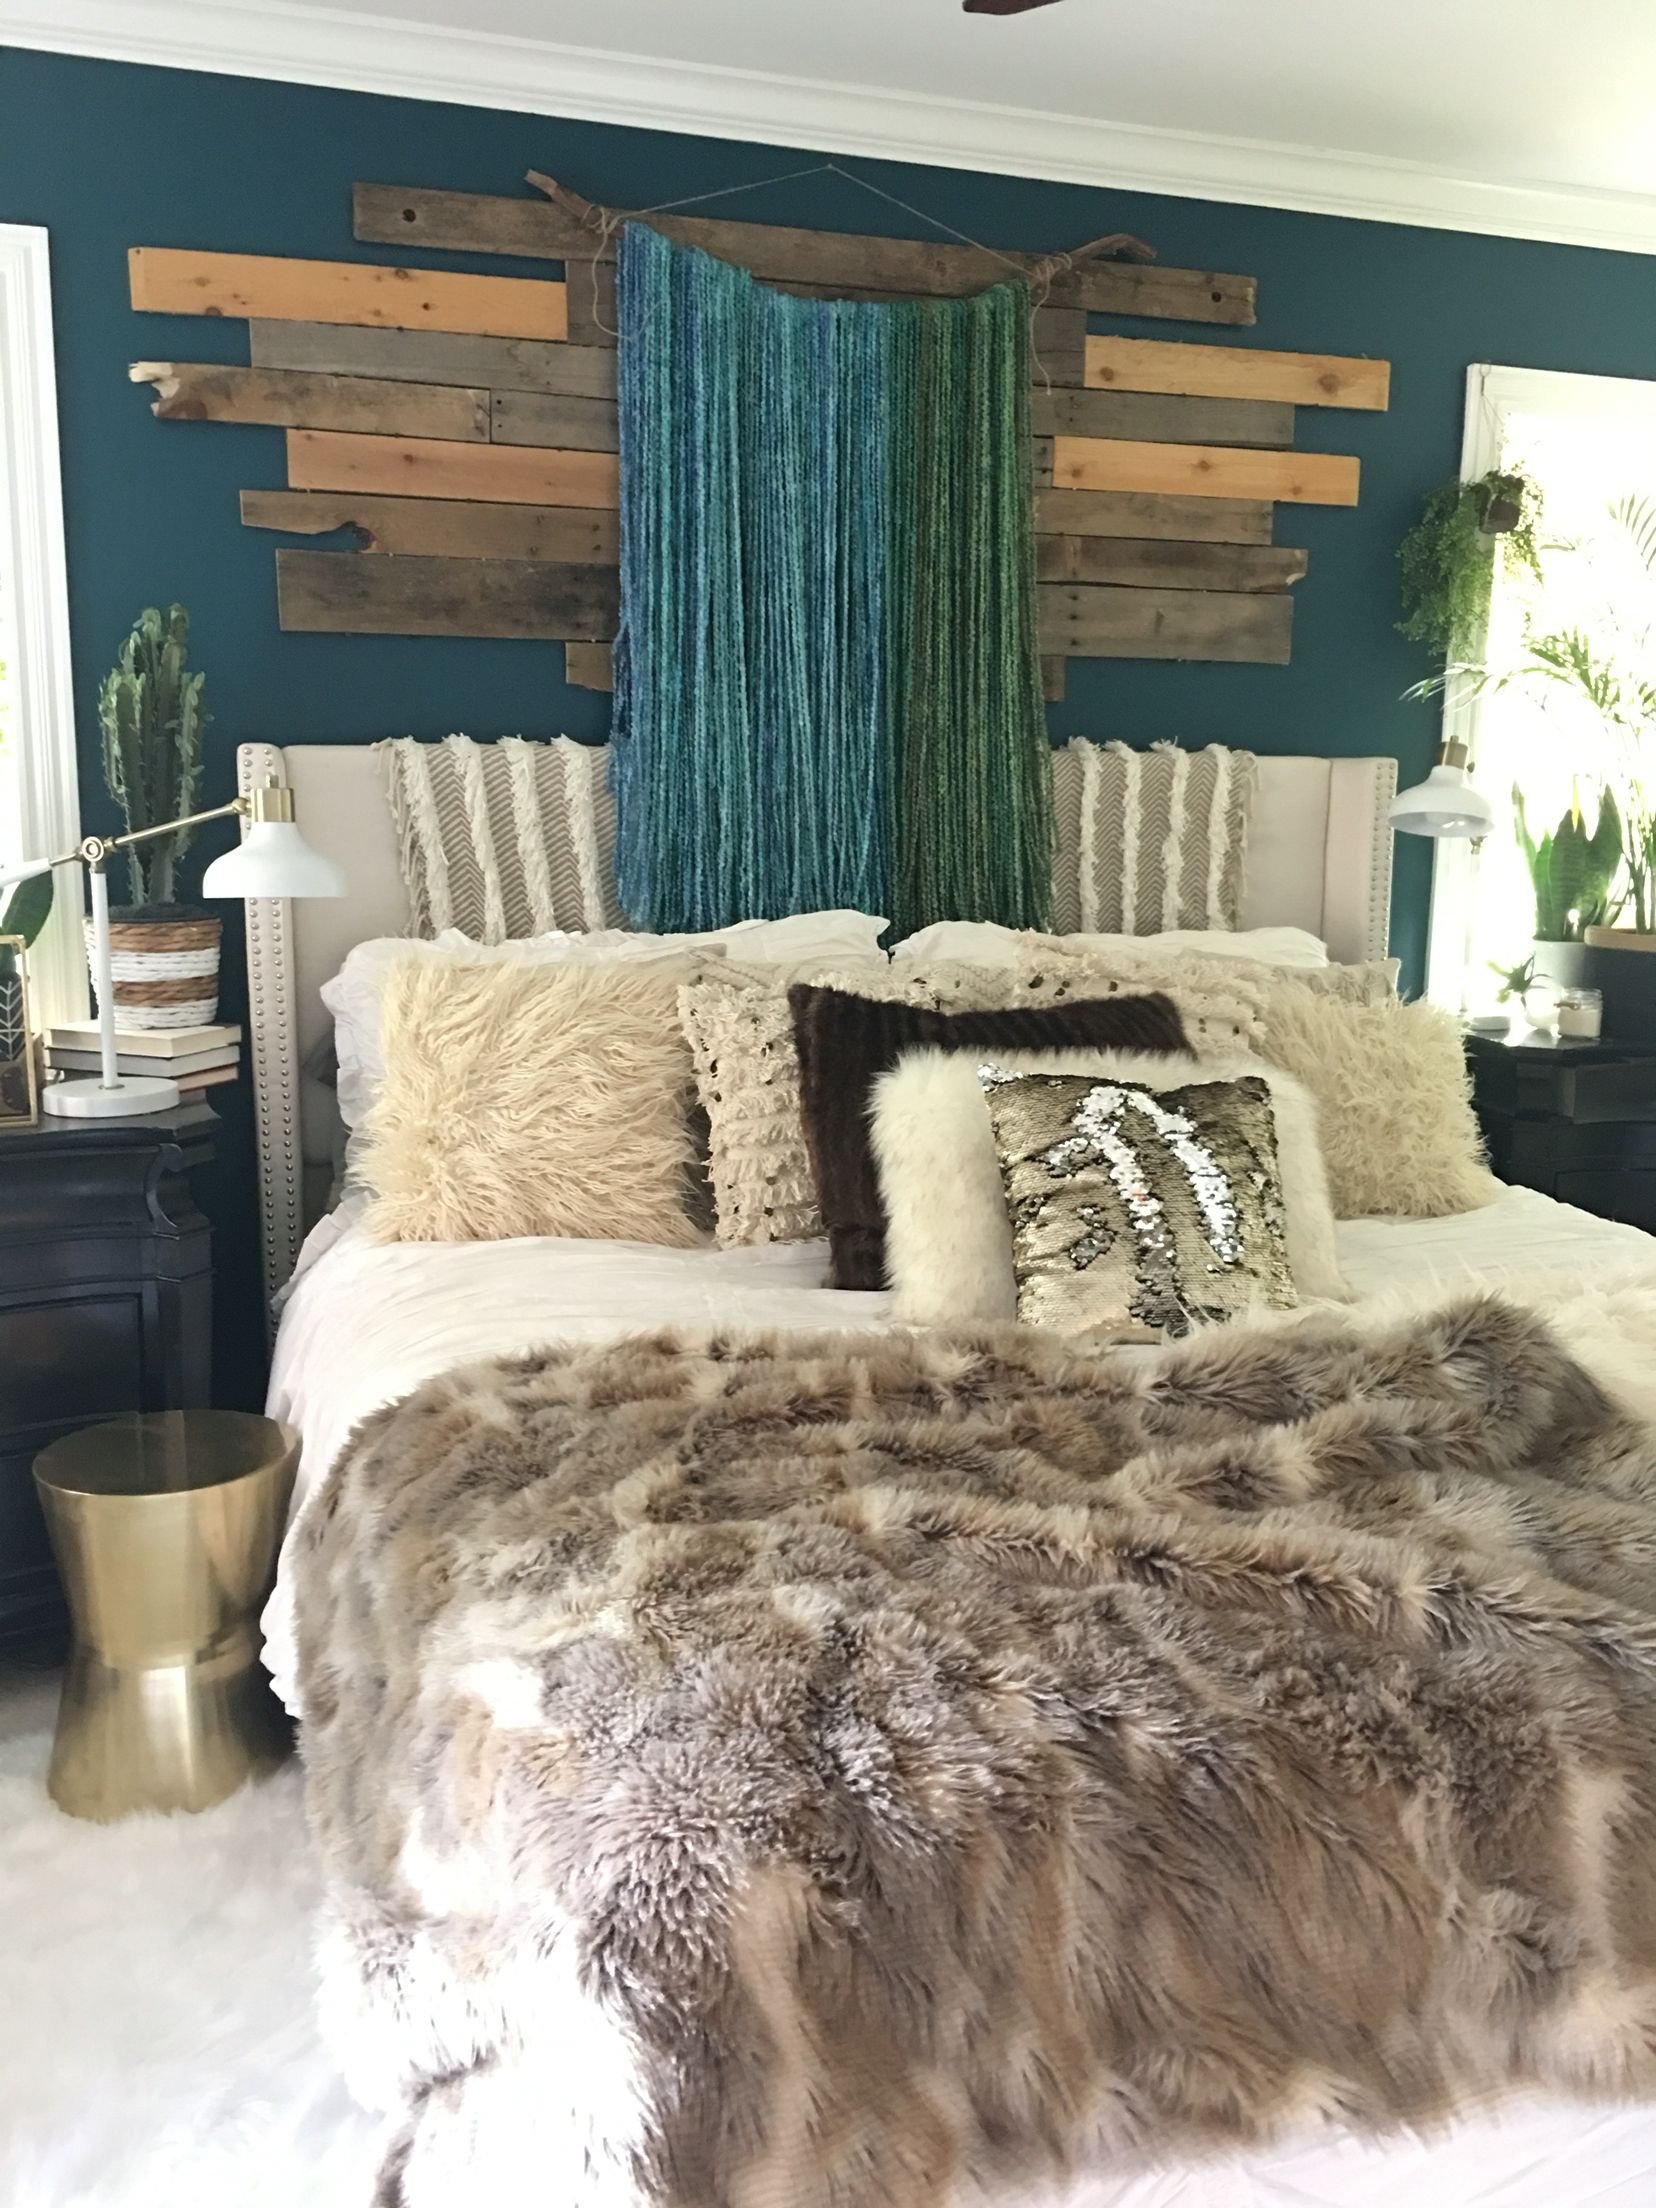 Glam Bedroom Inspiration Boho Glam Bedroom By Blissfully Eclectic Ocean Abyss